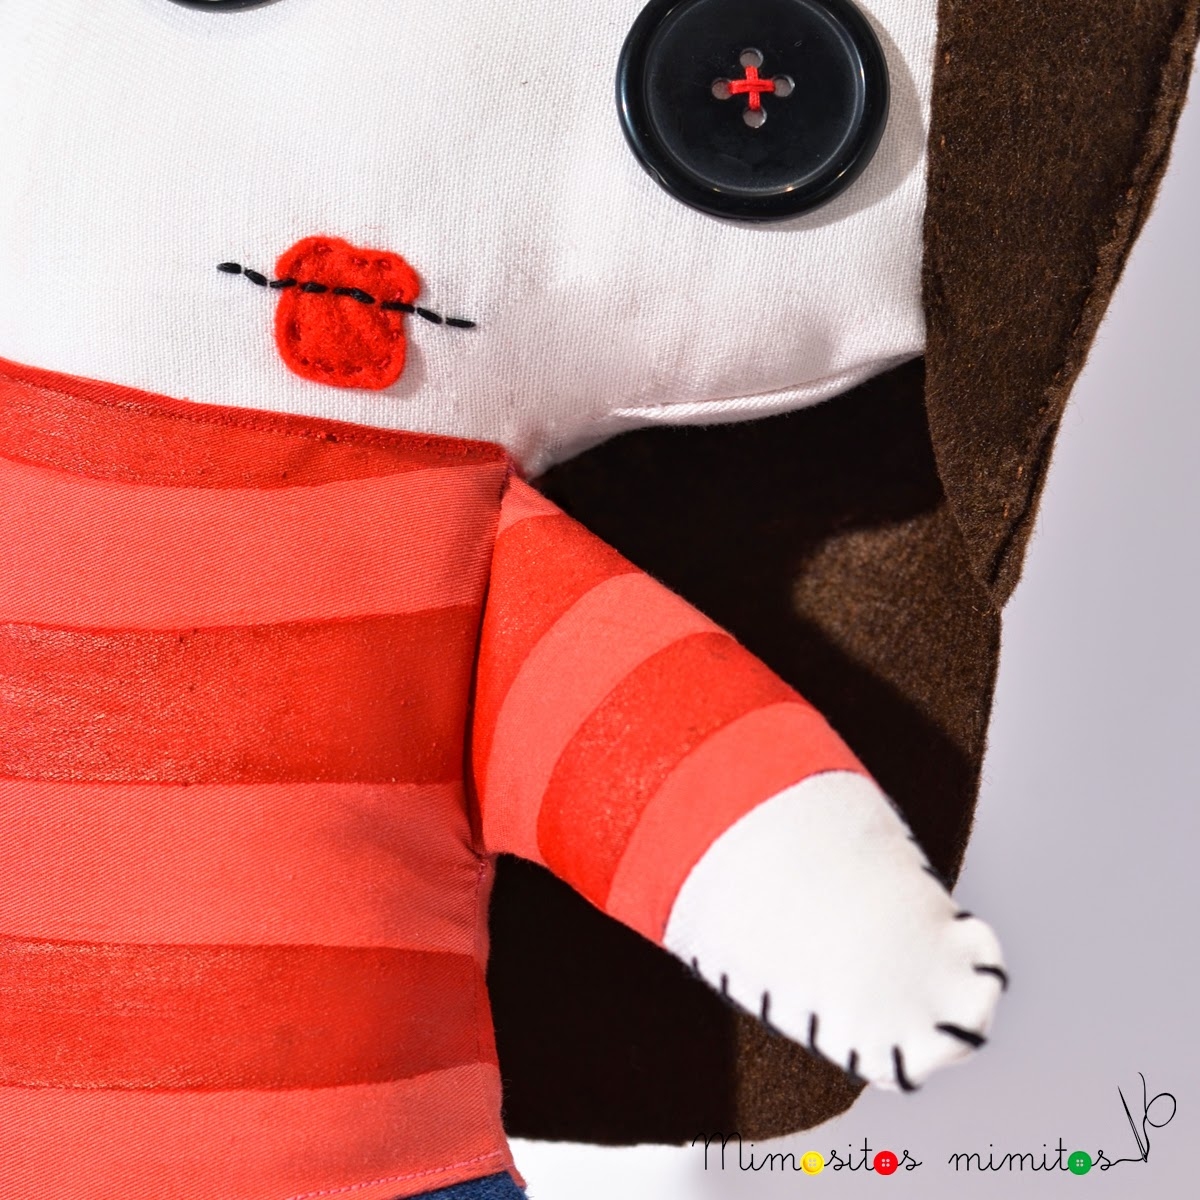 muñeco personalizado customized stuffed toy muñeco hecho a mano handmade craft editorial ediciones babylon